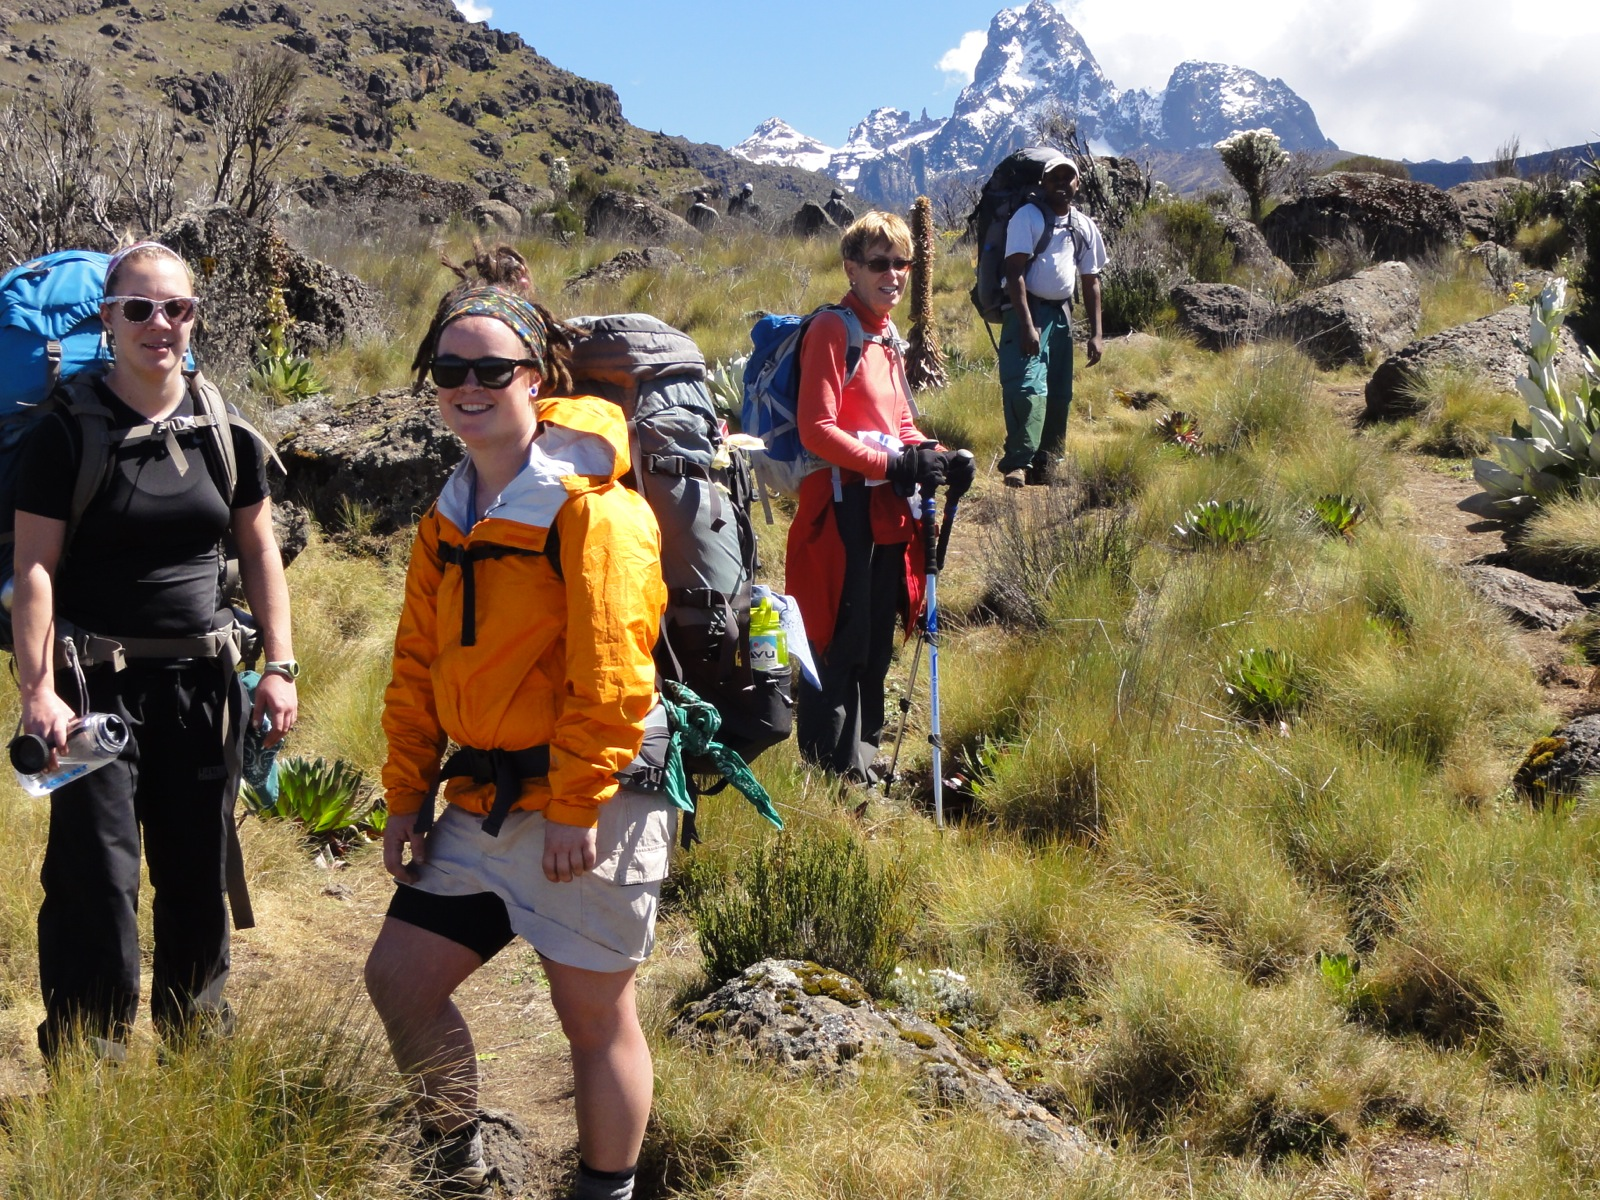 A group wearing backpacks takes a break along the trail; snow capped mountains in the background.